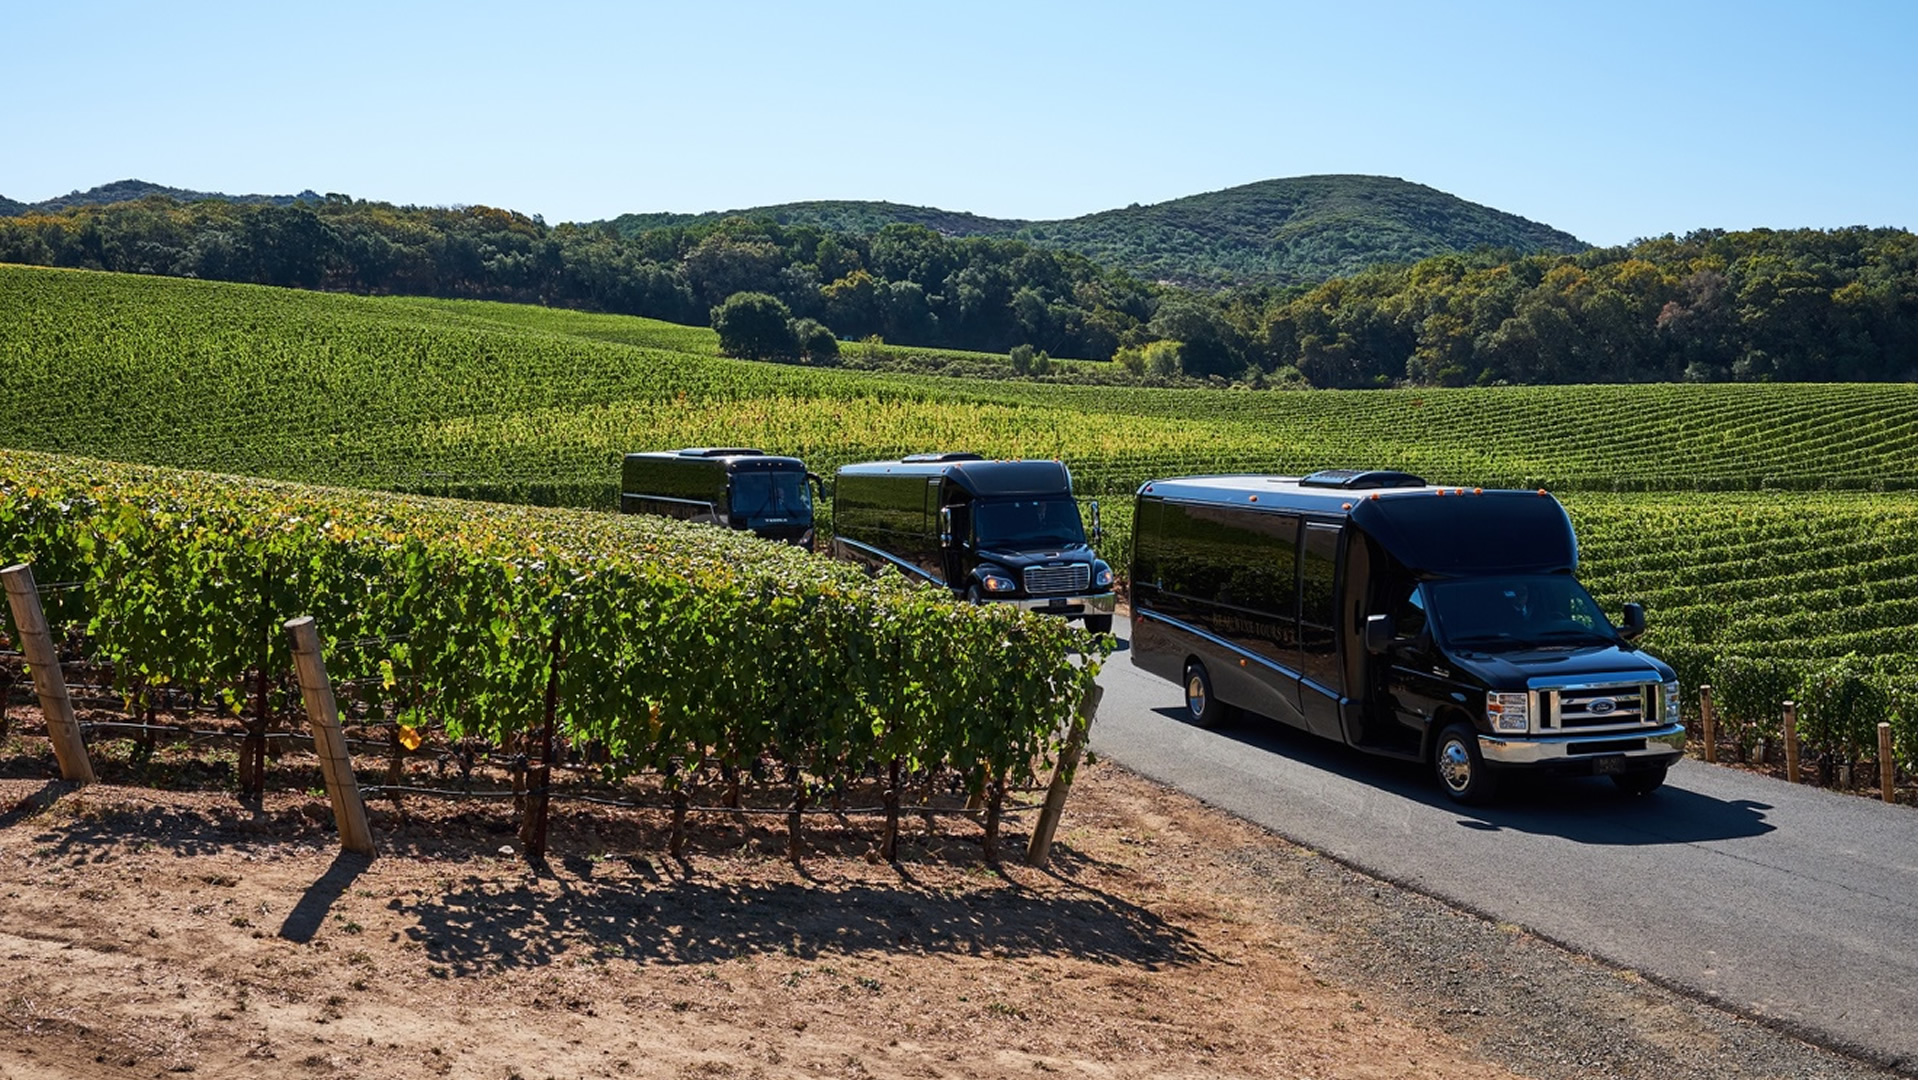 What better way to spend a day in North Texas than check out three vineyards winning some serious national attention? Tastings and lunch included.